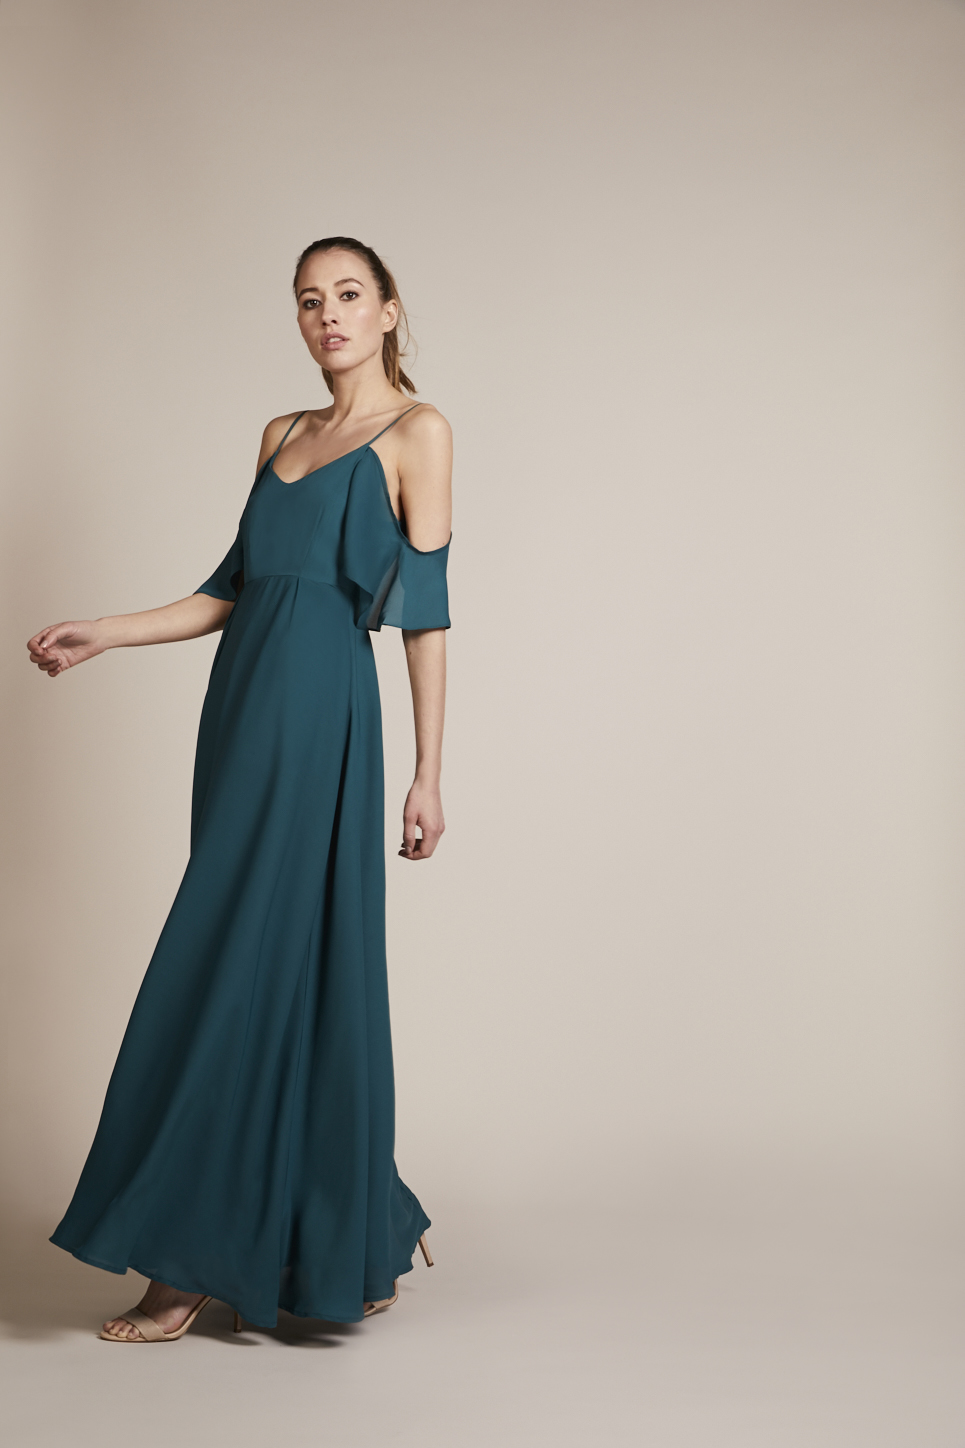 Rewritten 2018 collection bridesmaids dresses for the cool bride